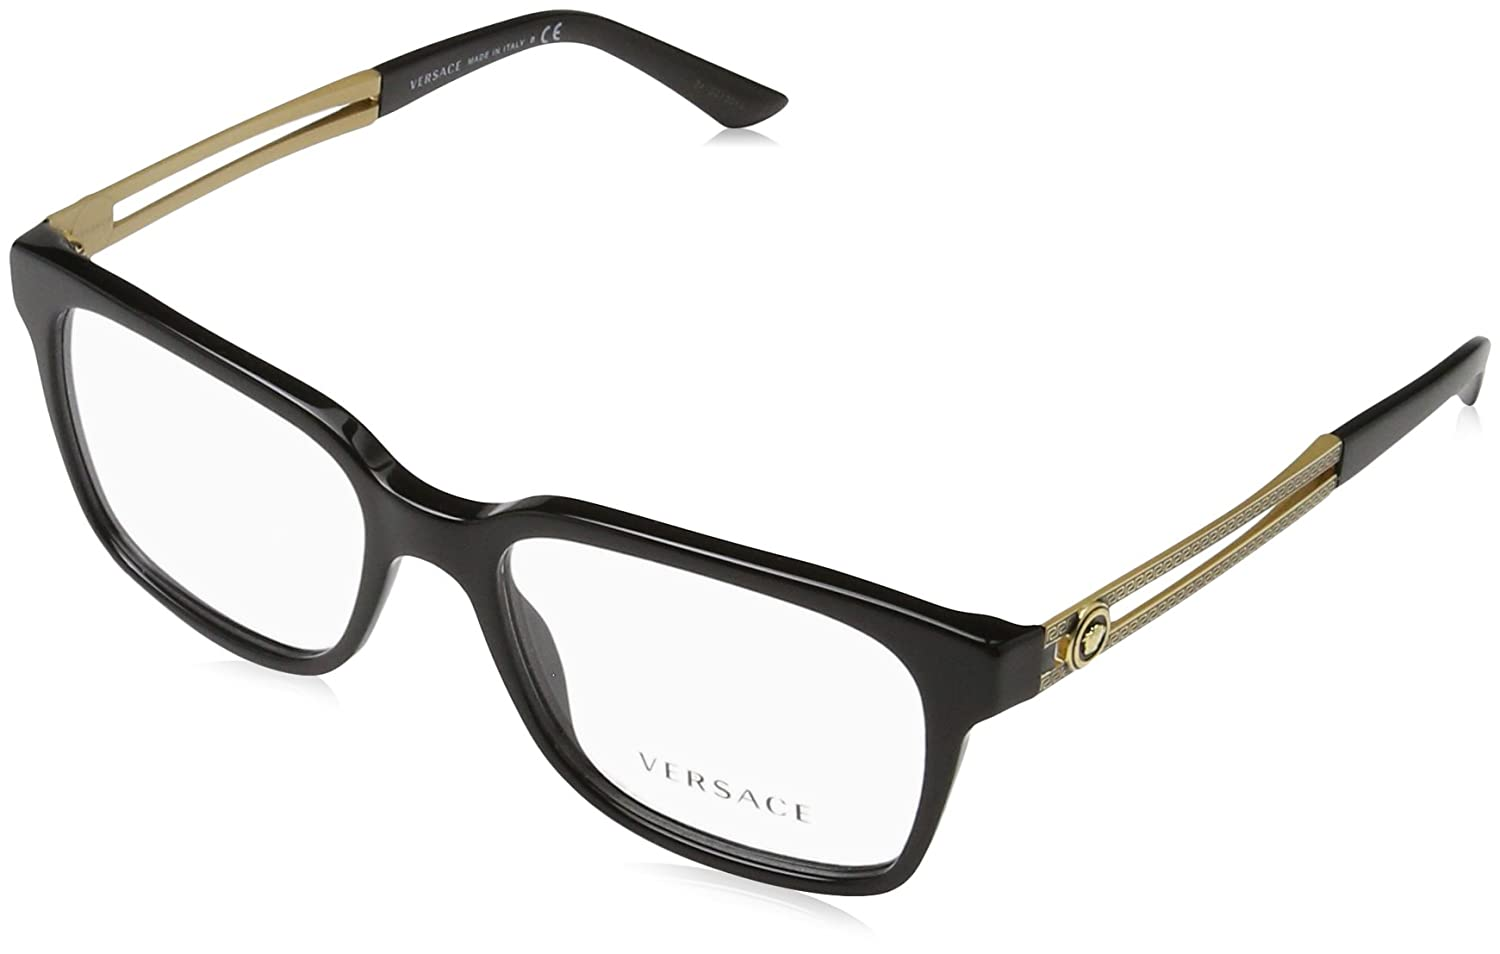 4edd4a42e9c7c Amazon.com  Eyeglasses Versace VE 3218 GB1 BLACK  Clothing